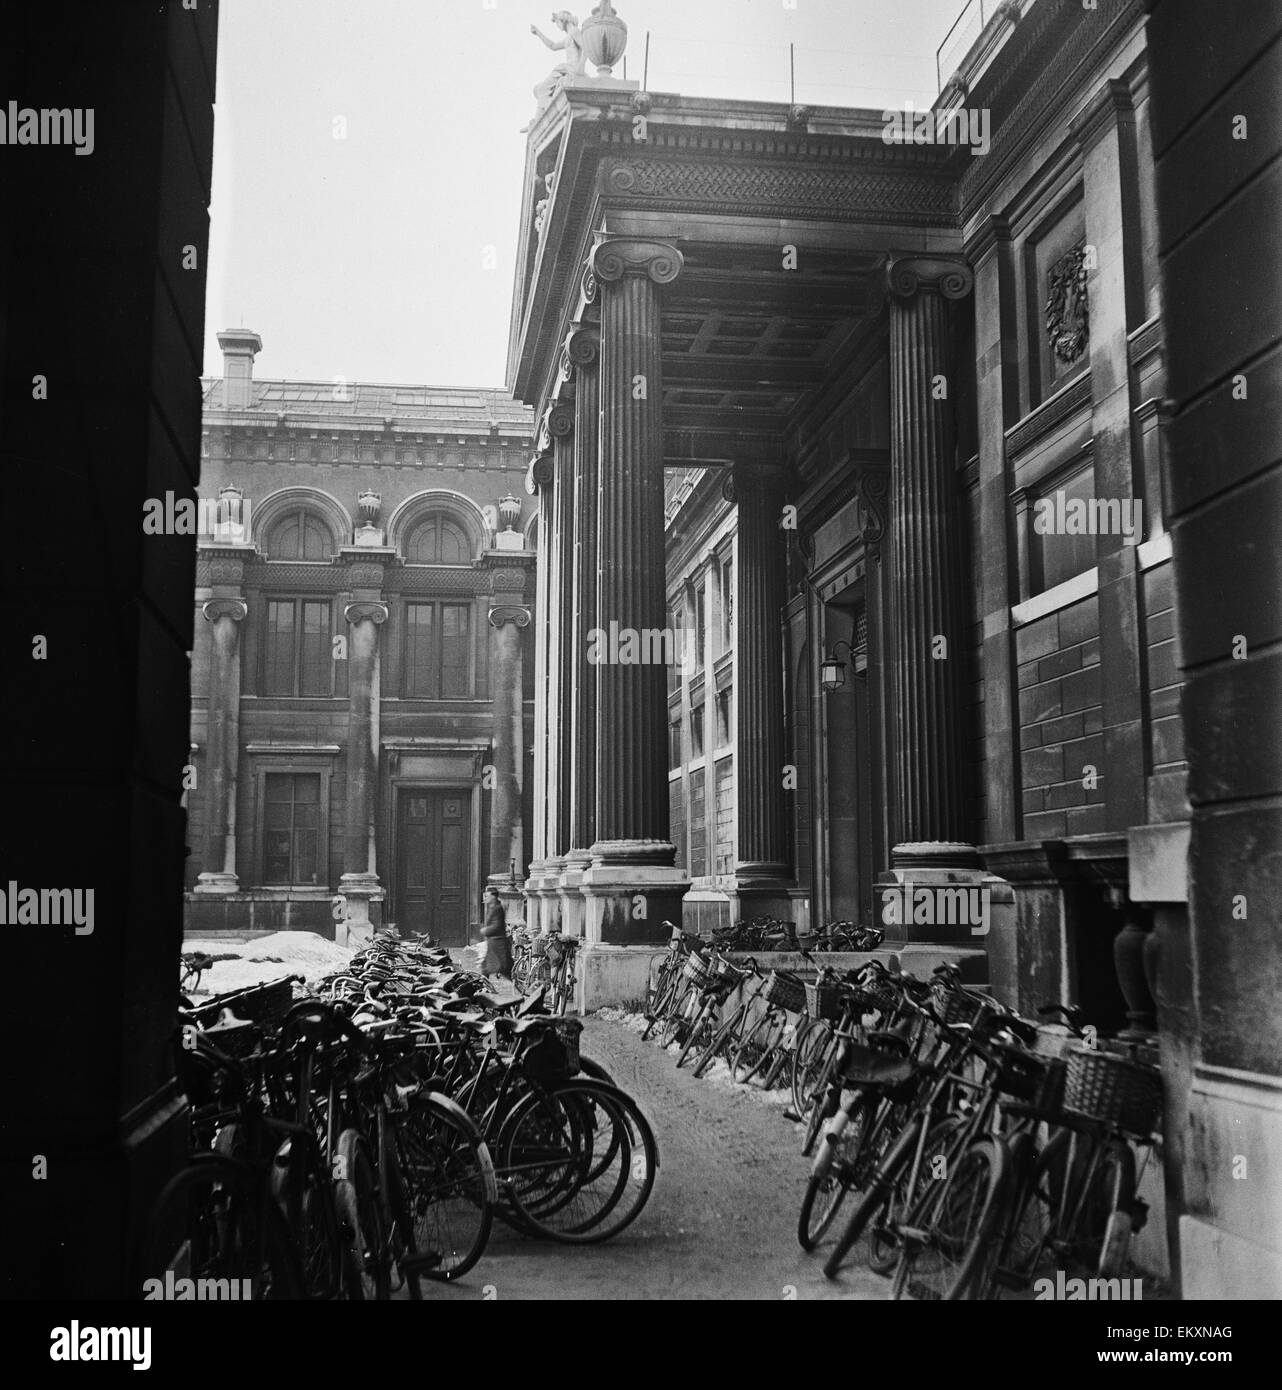 Bicycles parked outside one of the University colleges in Oxford. Circa 1950. - Stock Image